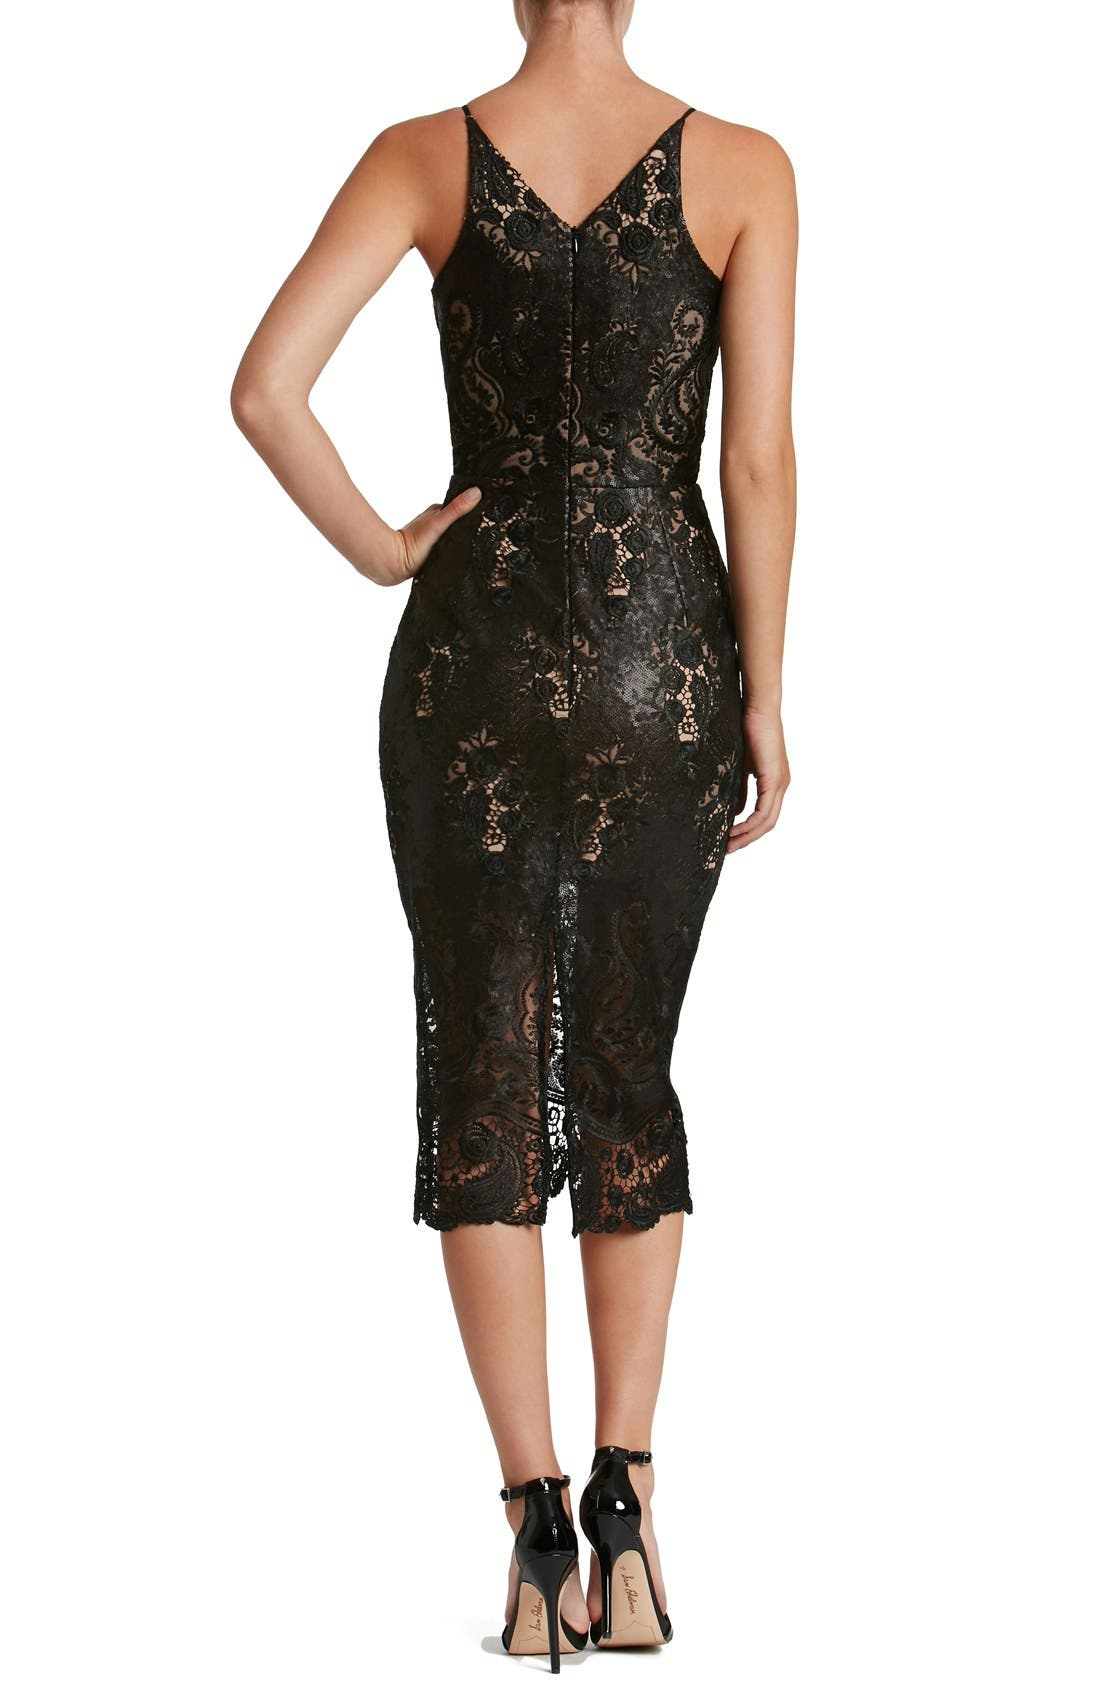 Angela Sequin Lace Midi Dress,                             Alternate thumbnail 2, color,                             Black/ Nude